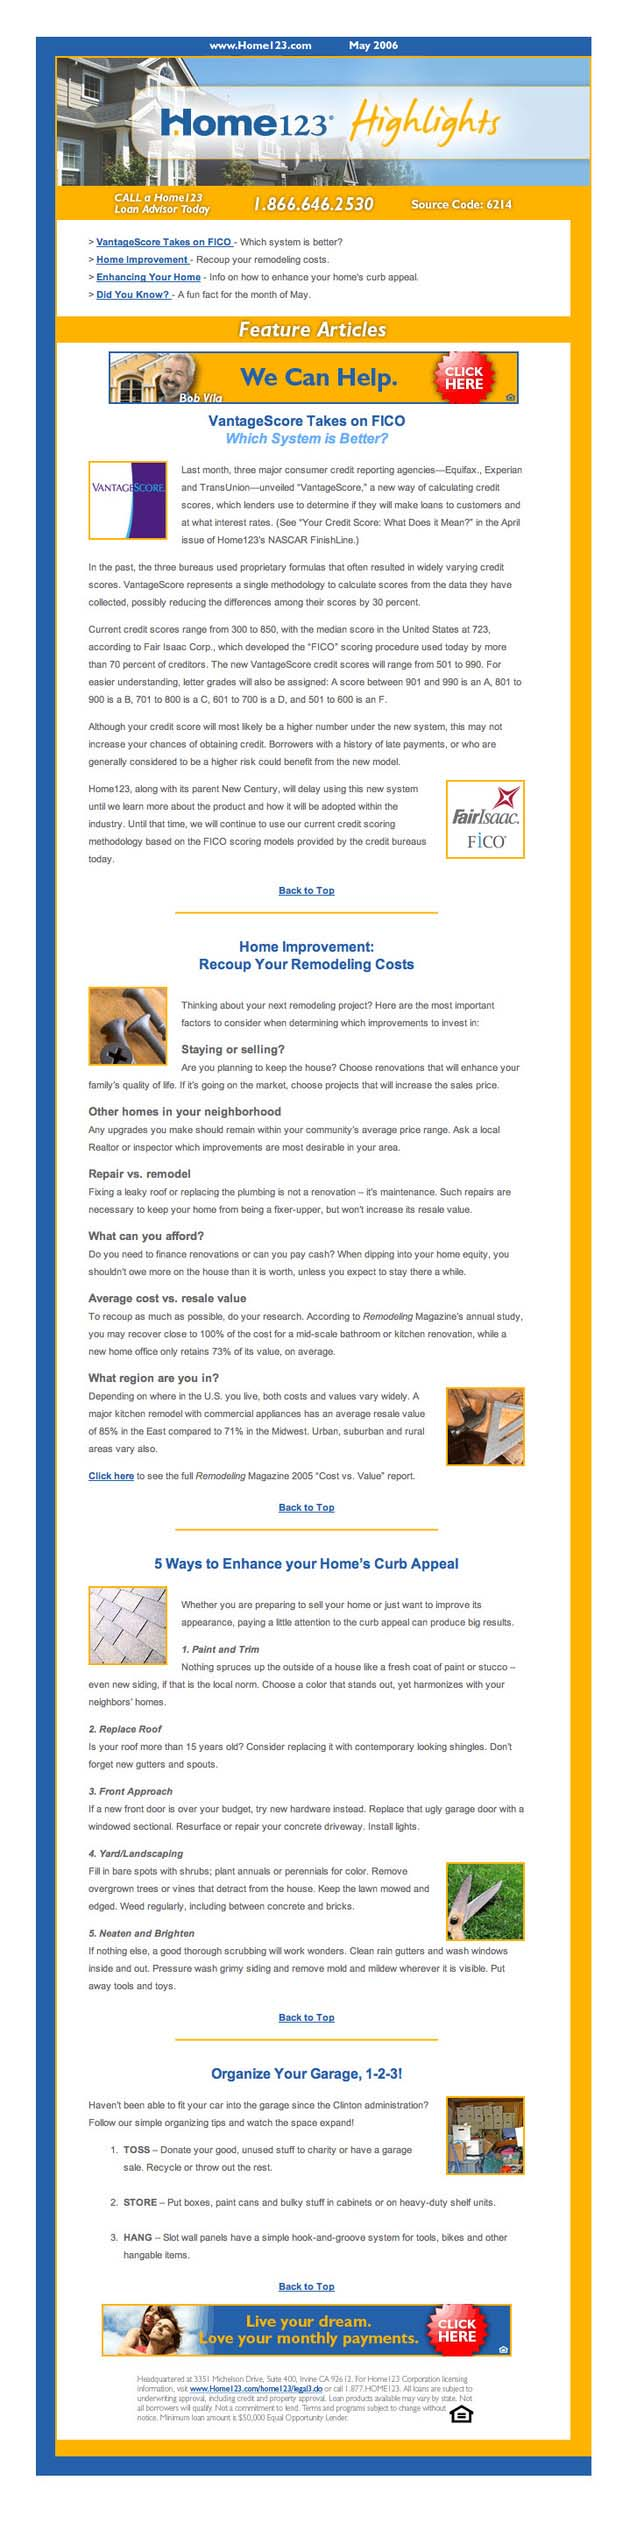 Home123 Mortgage E-newsletter content May 2006